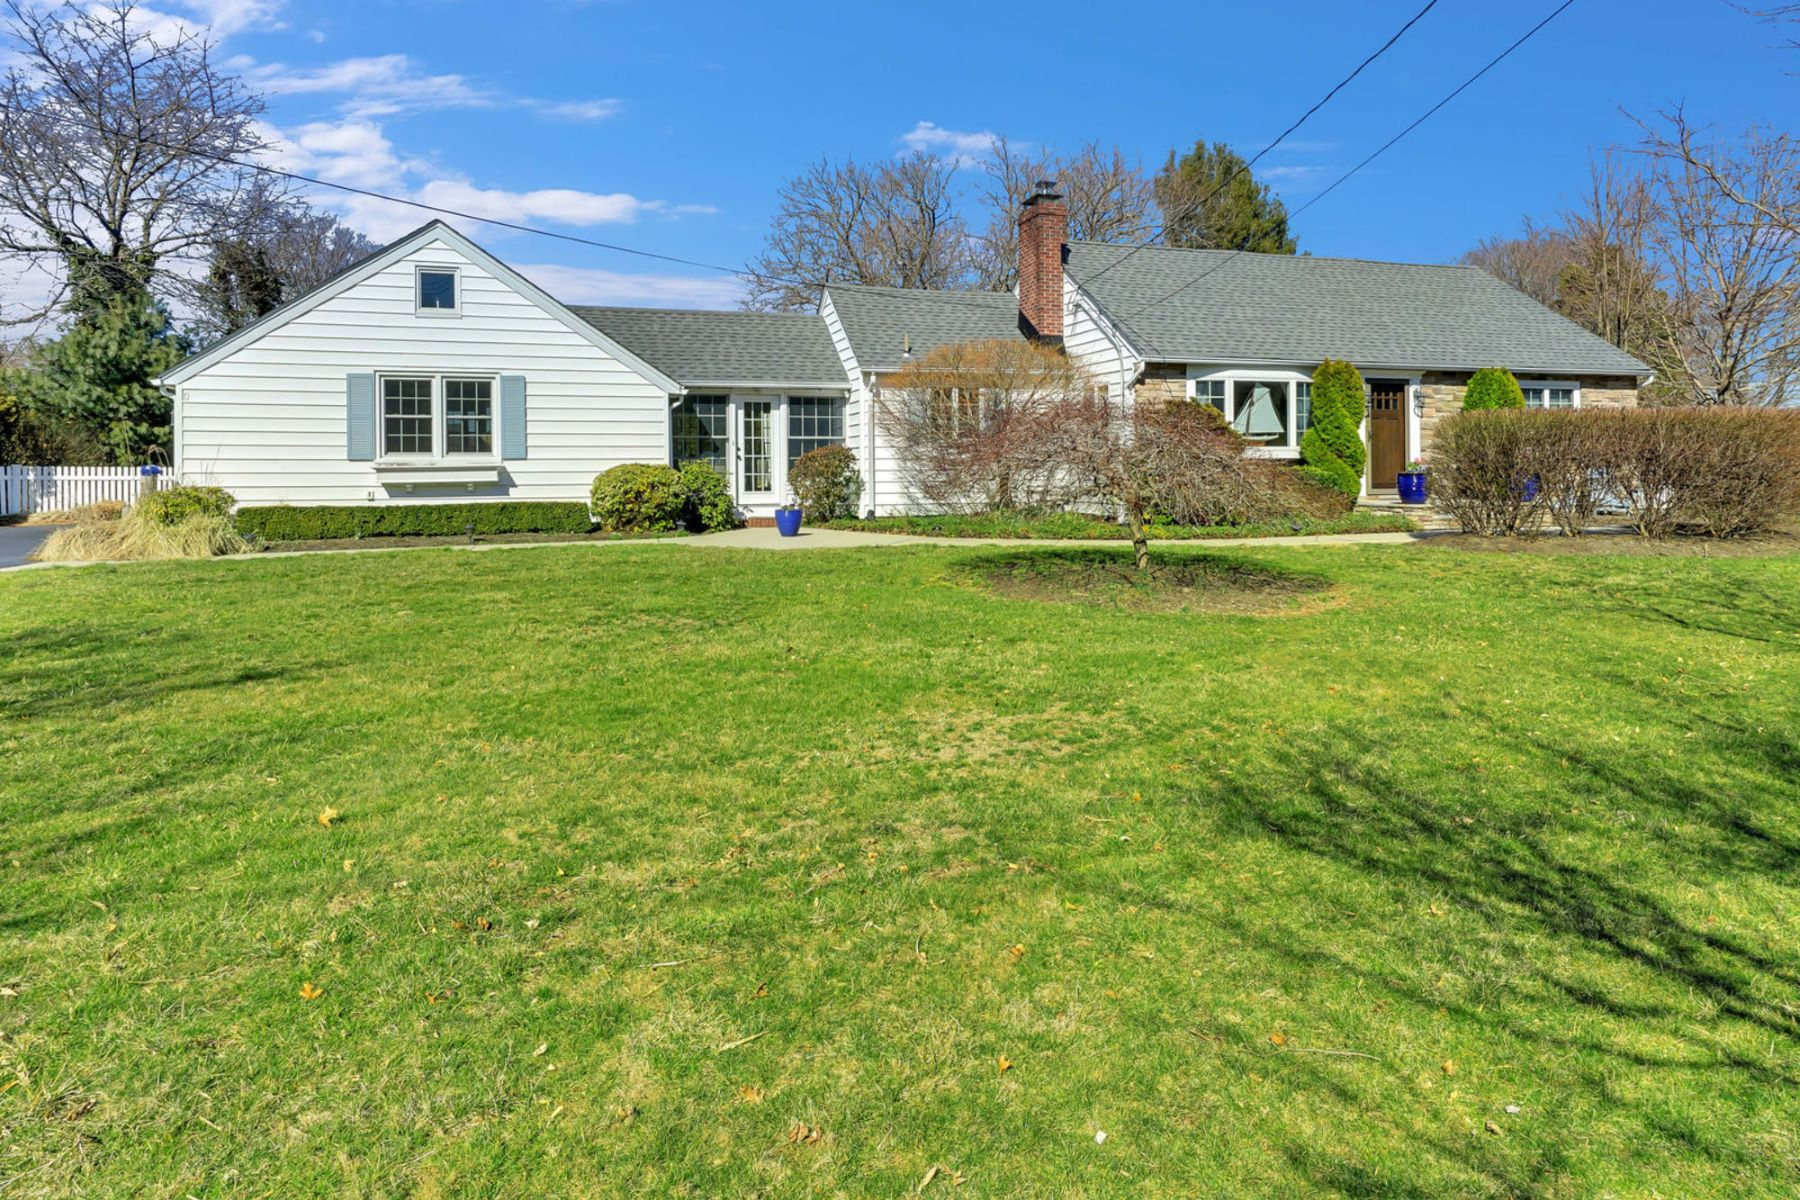 Single Family Home for Sale at Sea Girt Estates 1208 Sea Girt Avenue, Wall, New Jersey 08750 United States